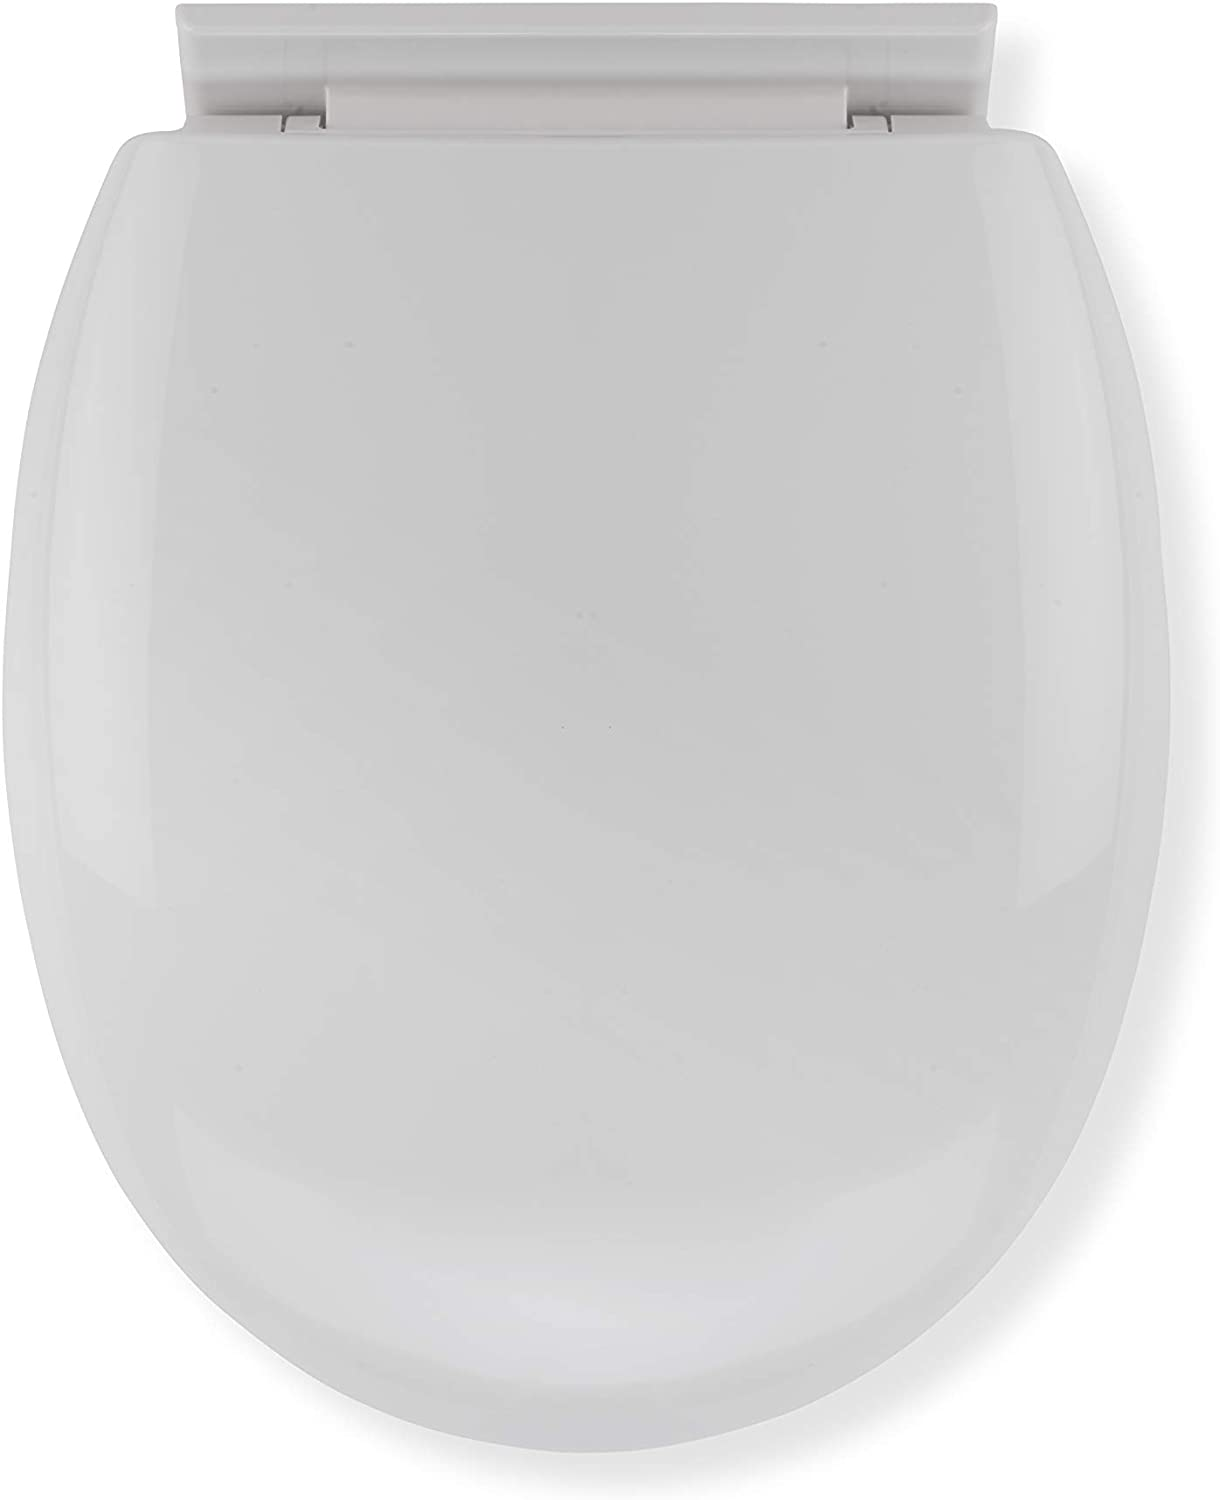 Croydex Anti-Bacterial Toilet Seat with Soft Close Hinges Made From Resilient Polypropylene, White